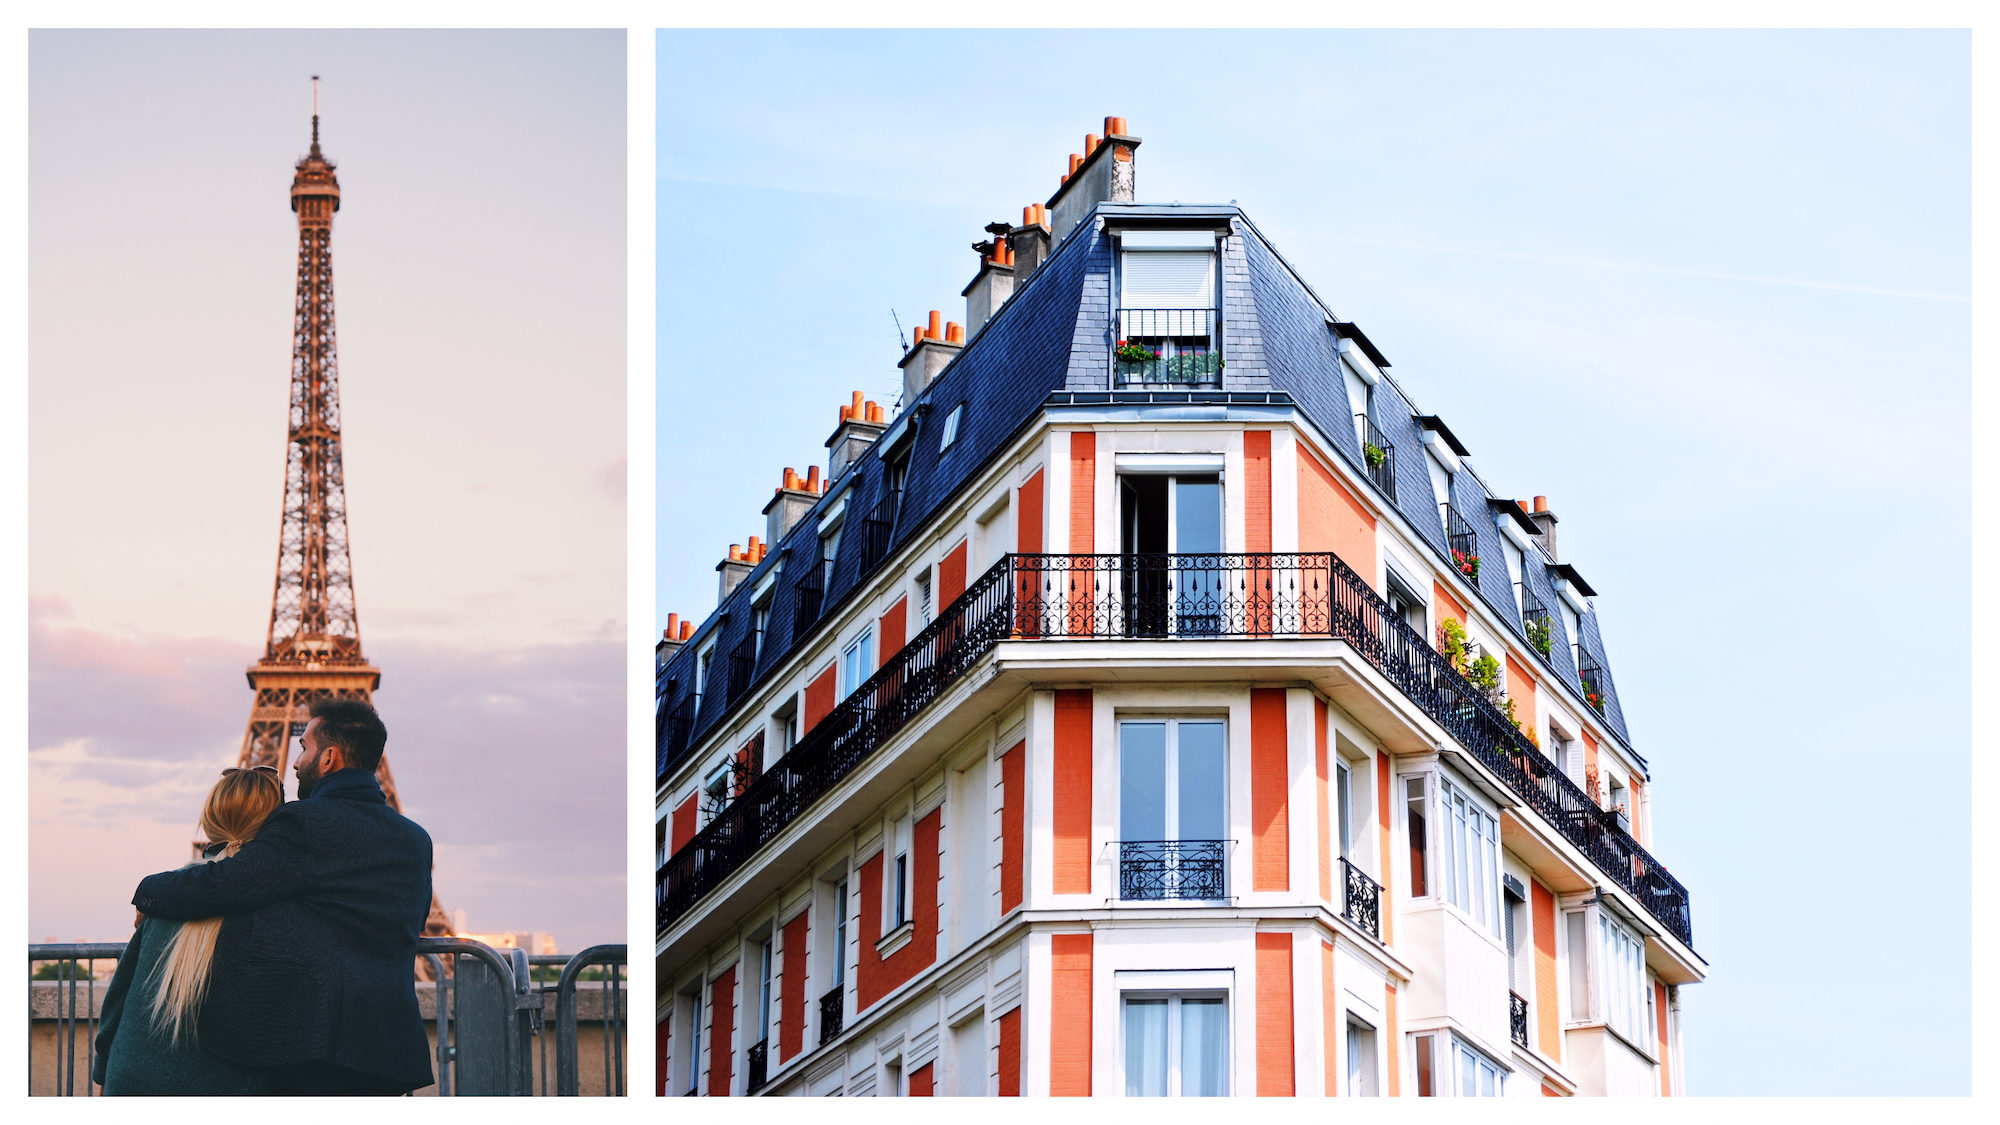 A couple look at the Eiffel Tower (left). An apartment building in Paris (right).